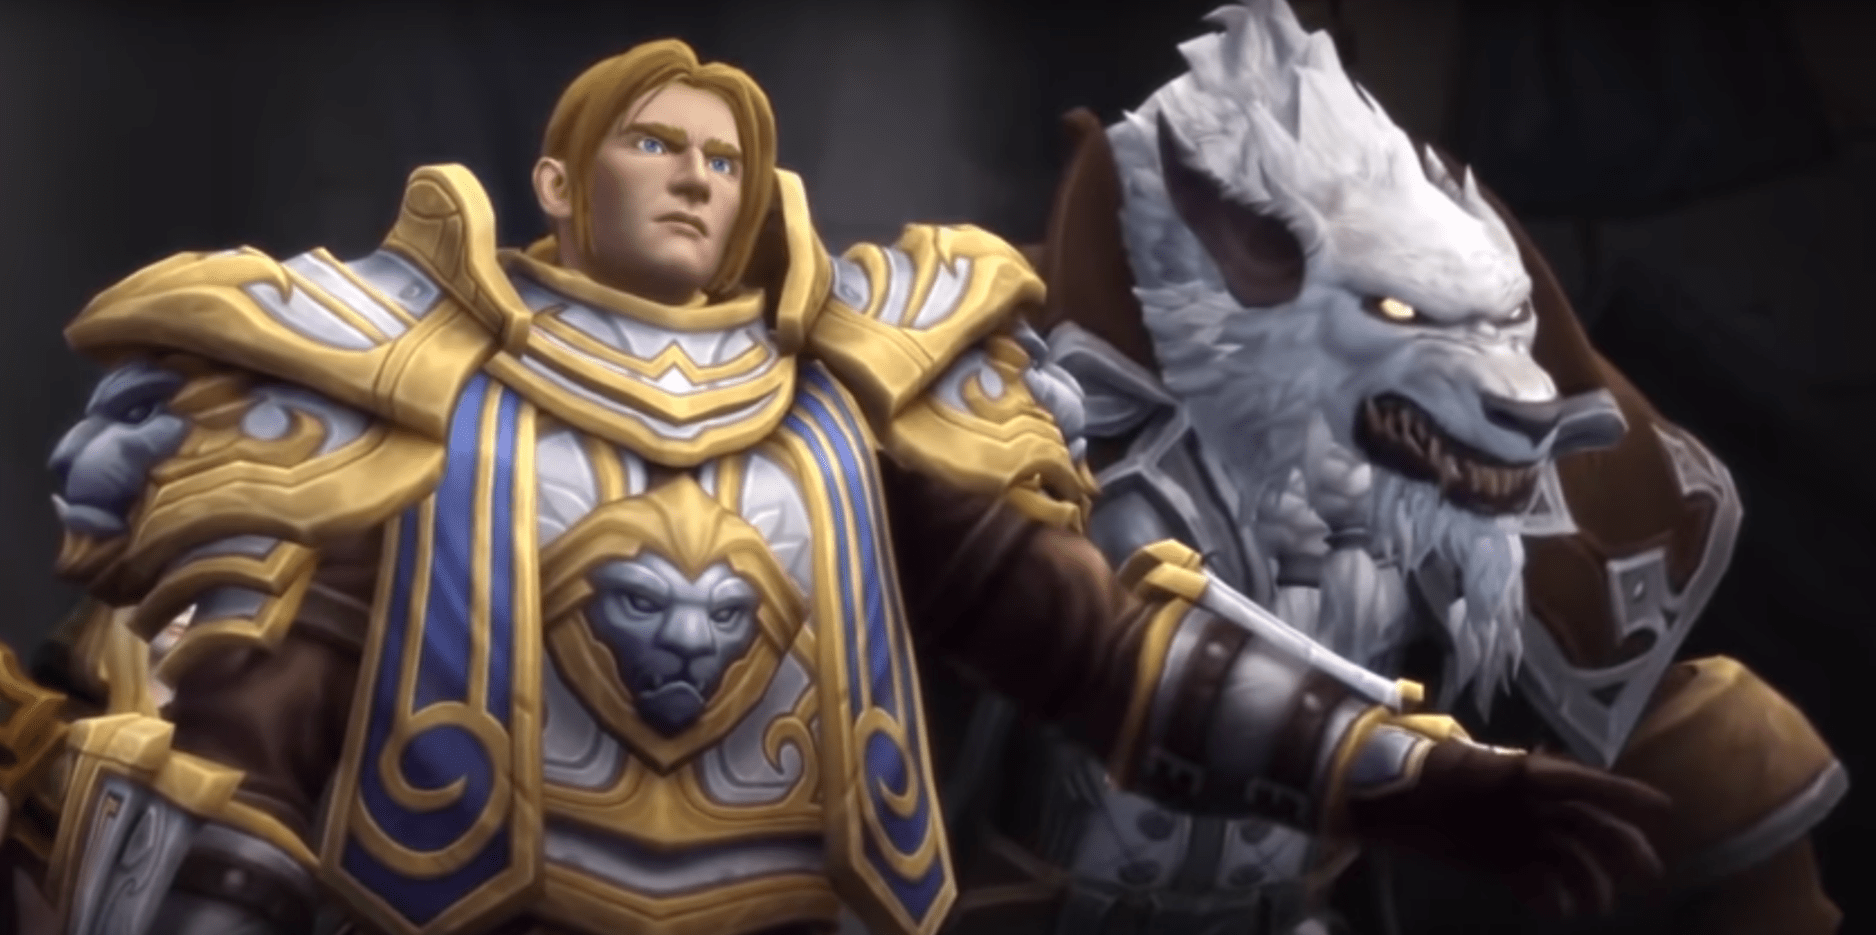 Which World Of Warcraft Expansion Will Be Most Efficient For Leveling In World Of Warcraft: Shadowlands?